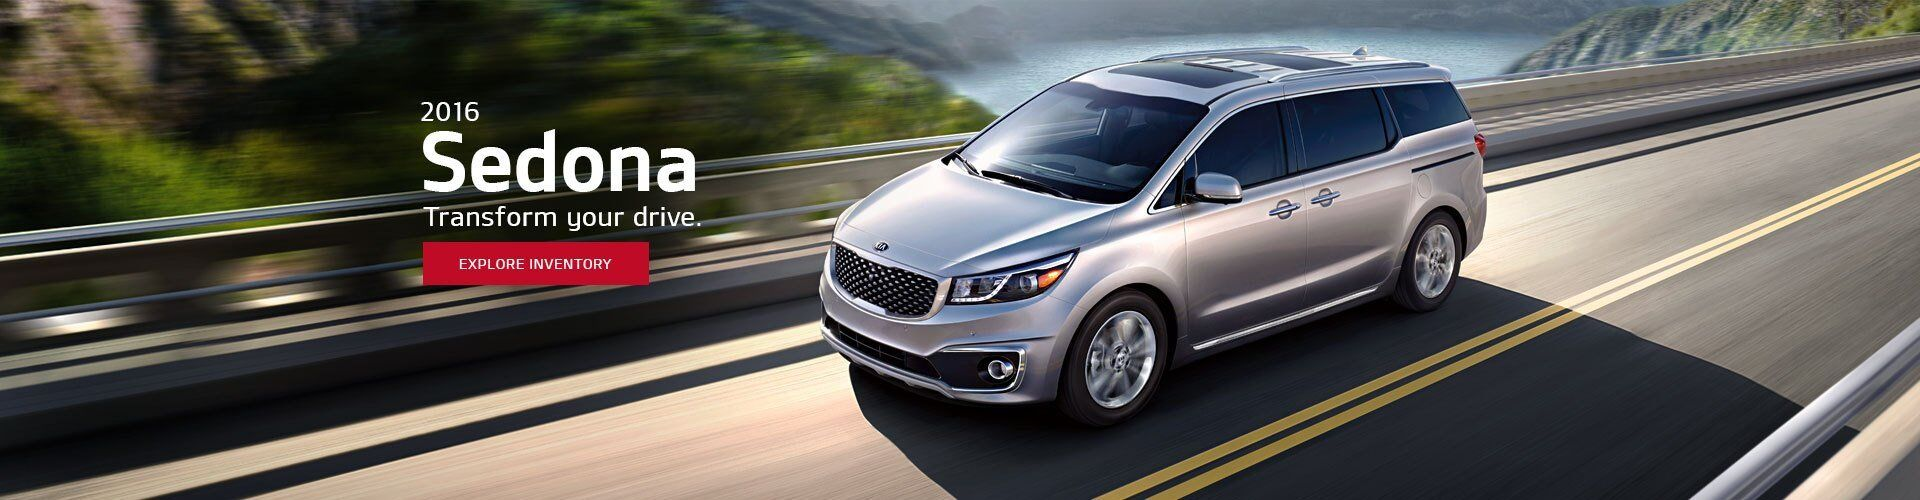 New Kia Sedona at Garden Grove Kia